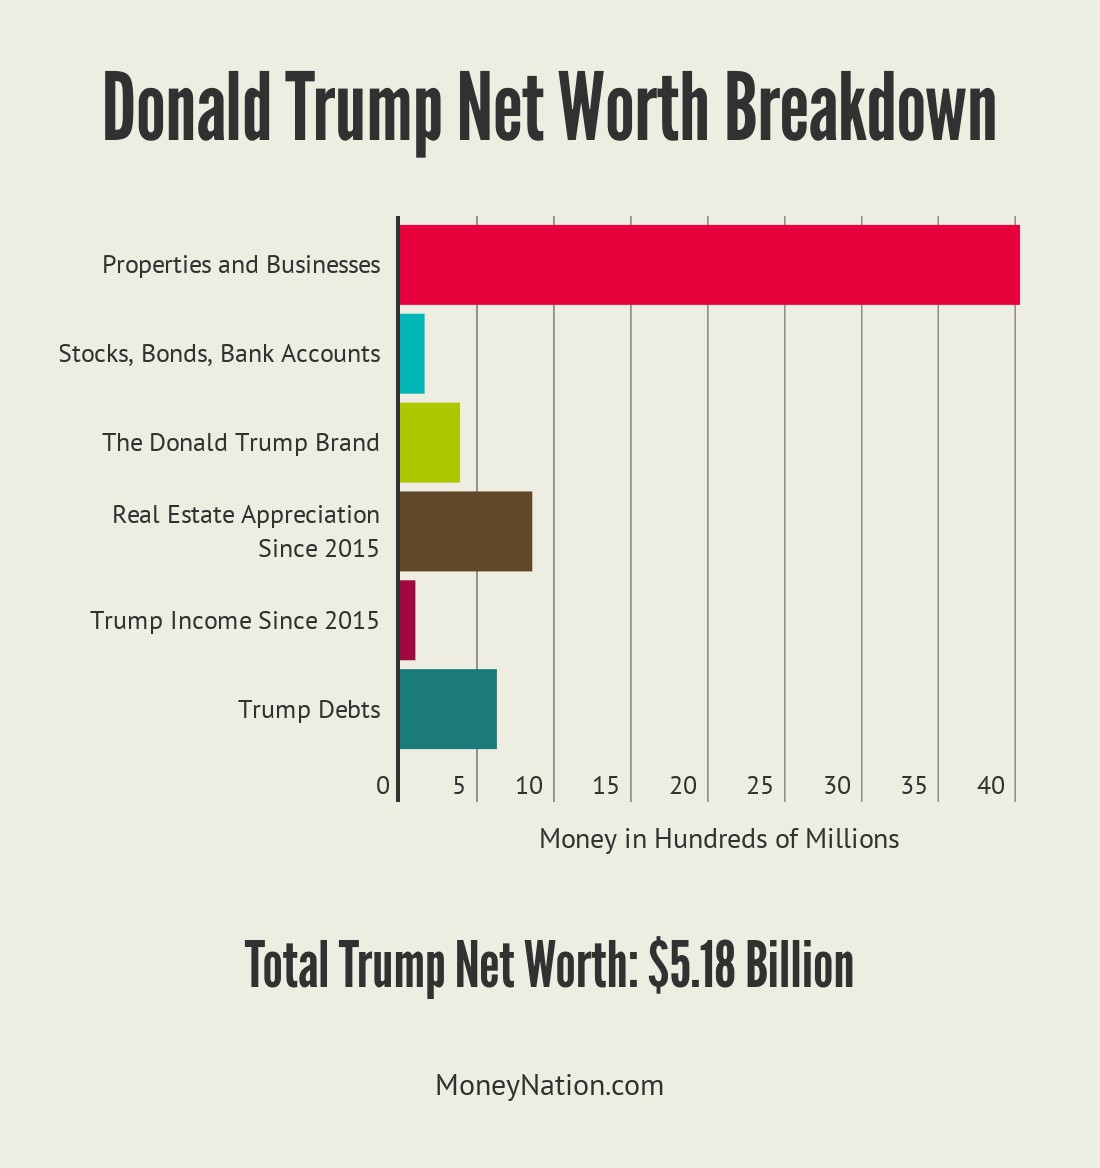 Donald Trump Net Worth Breakdown